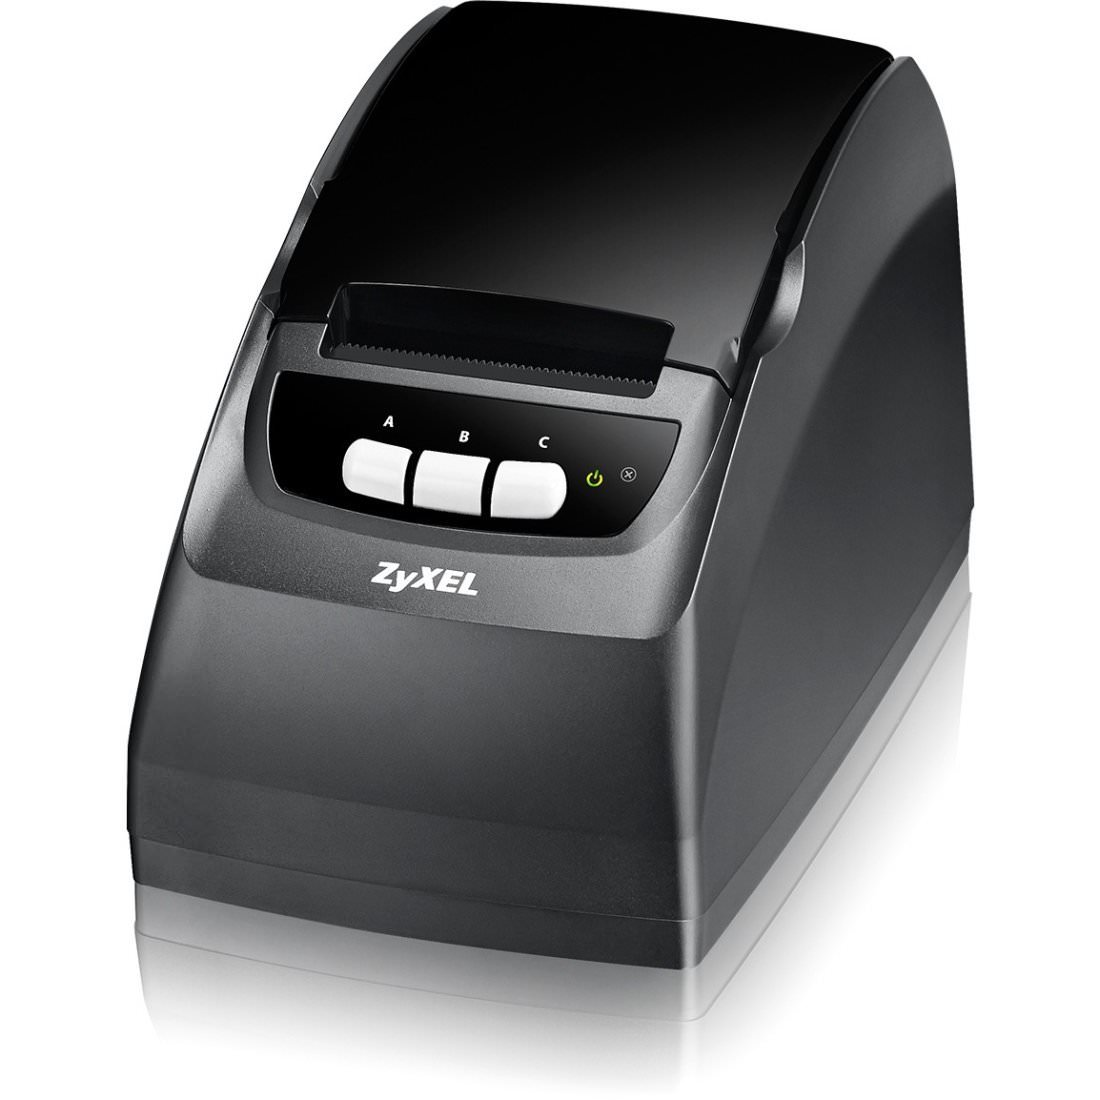 ZyXEL SP350E Service Gateway Printer by ZyXEL